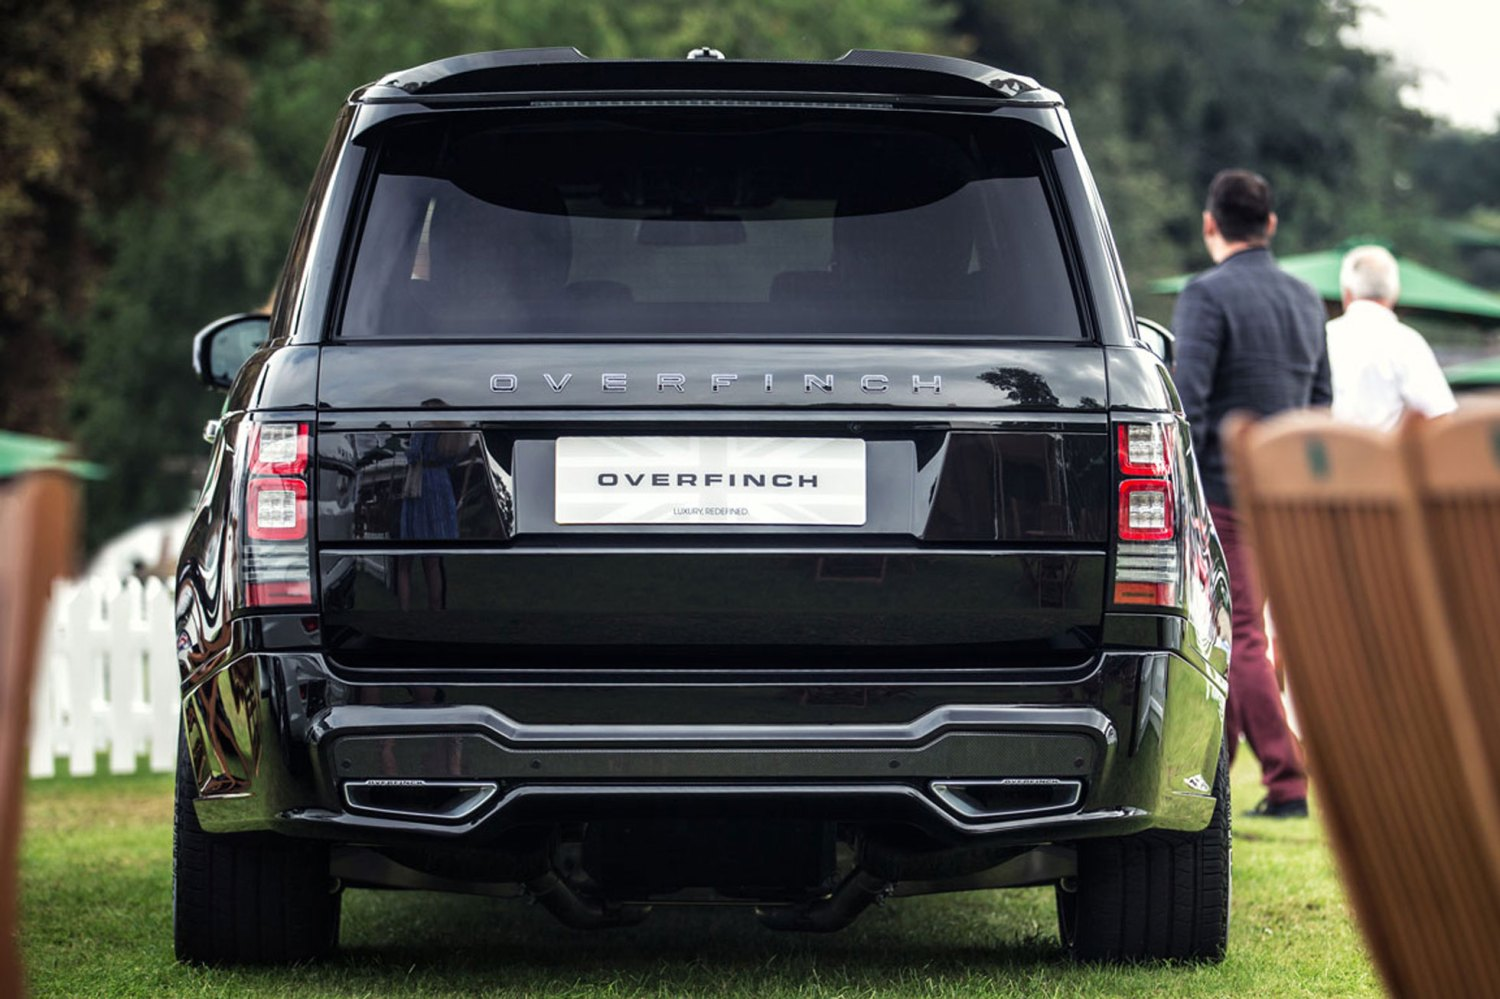 What would you buy instead of this £205,000 Range Rover?